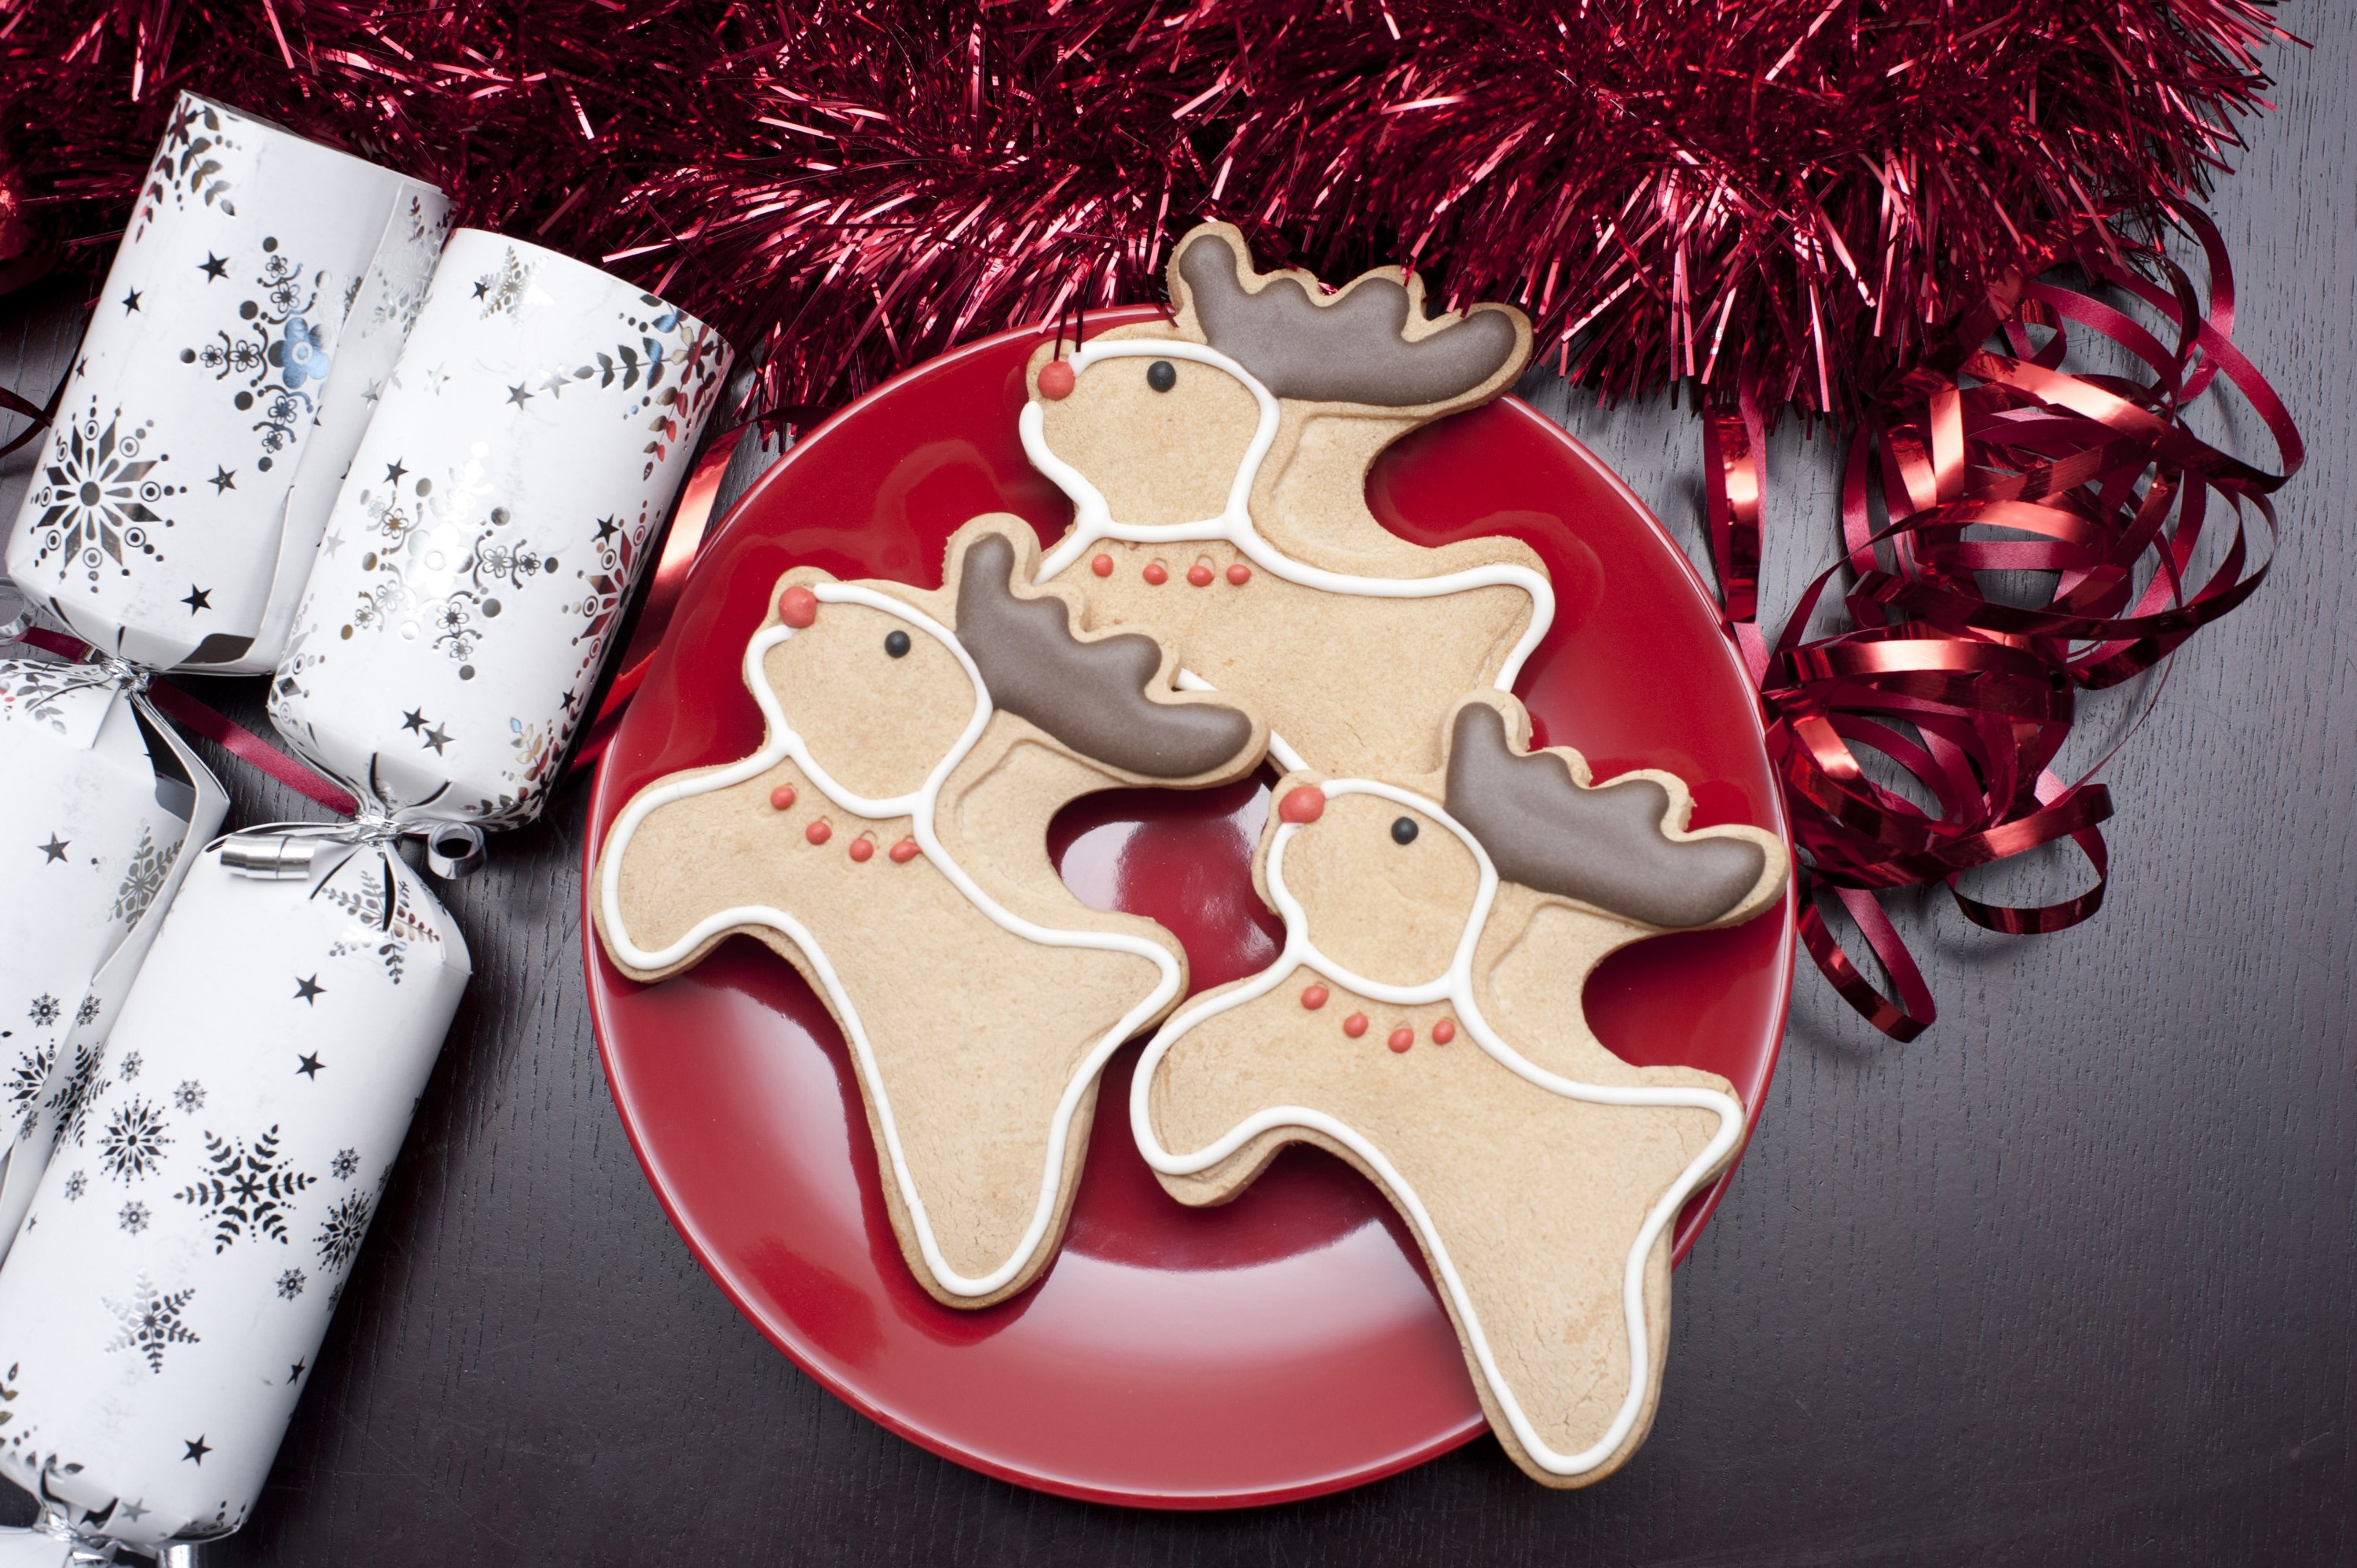 photo of reindeer christmas cookies on a plate free christmas images